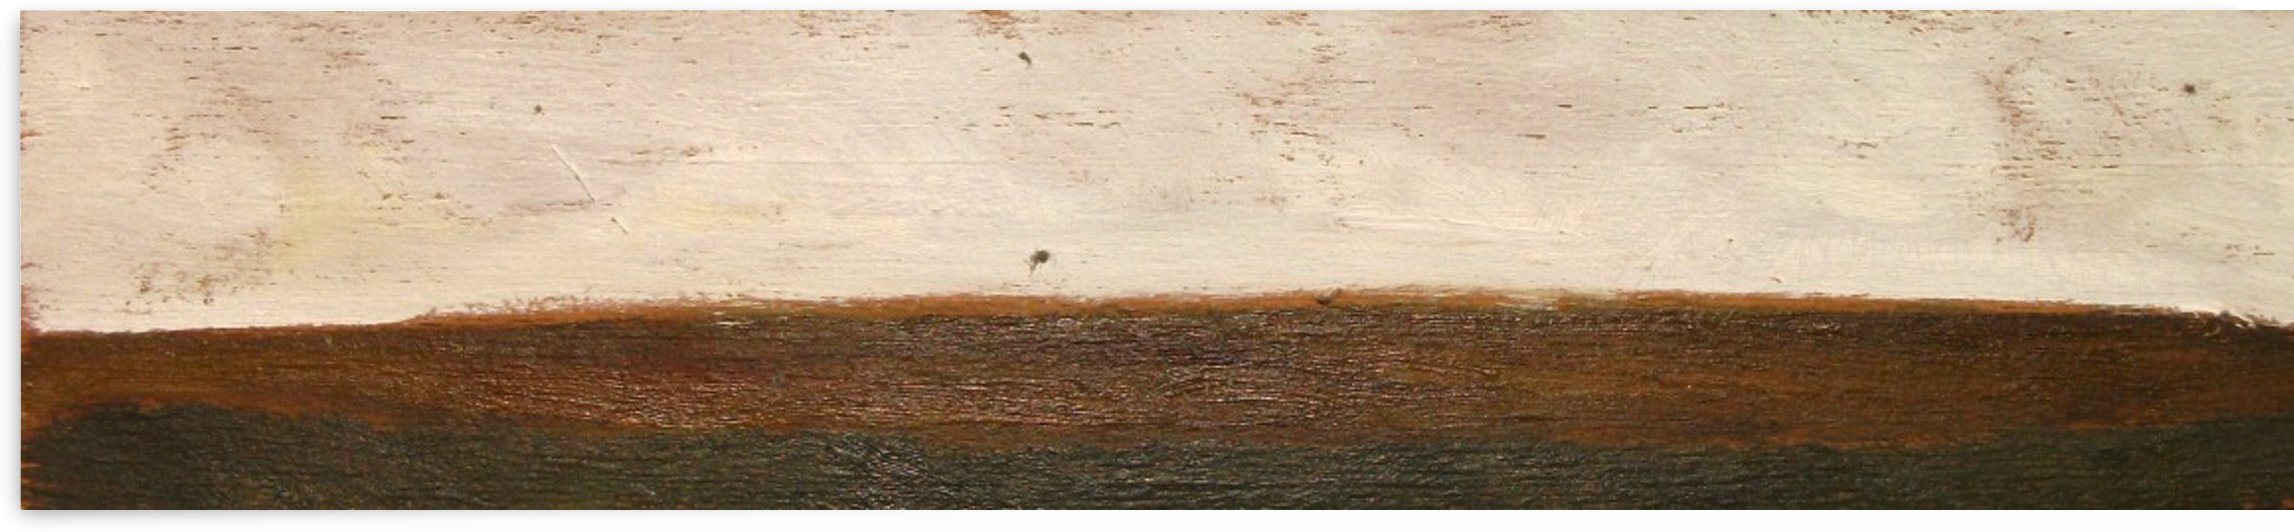 ITALIAN COUNTRYSIDE LANDSCAPE: HILL IN THE ROMAN CAMPAGNA - Italian and roman countryside landscapes, oil on wood series Painting by Alessandro Nesci